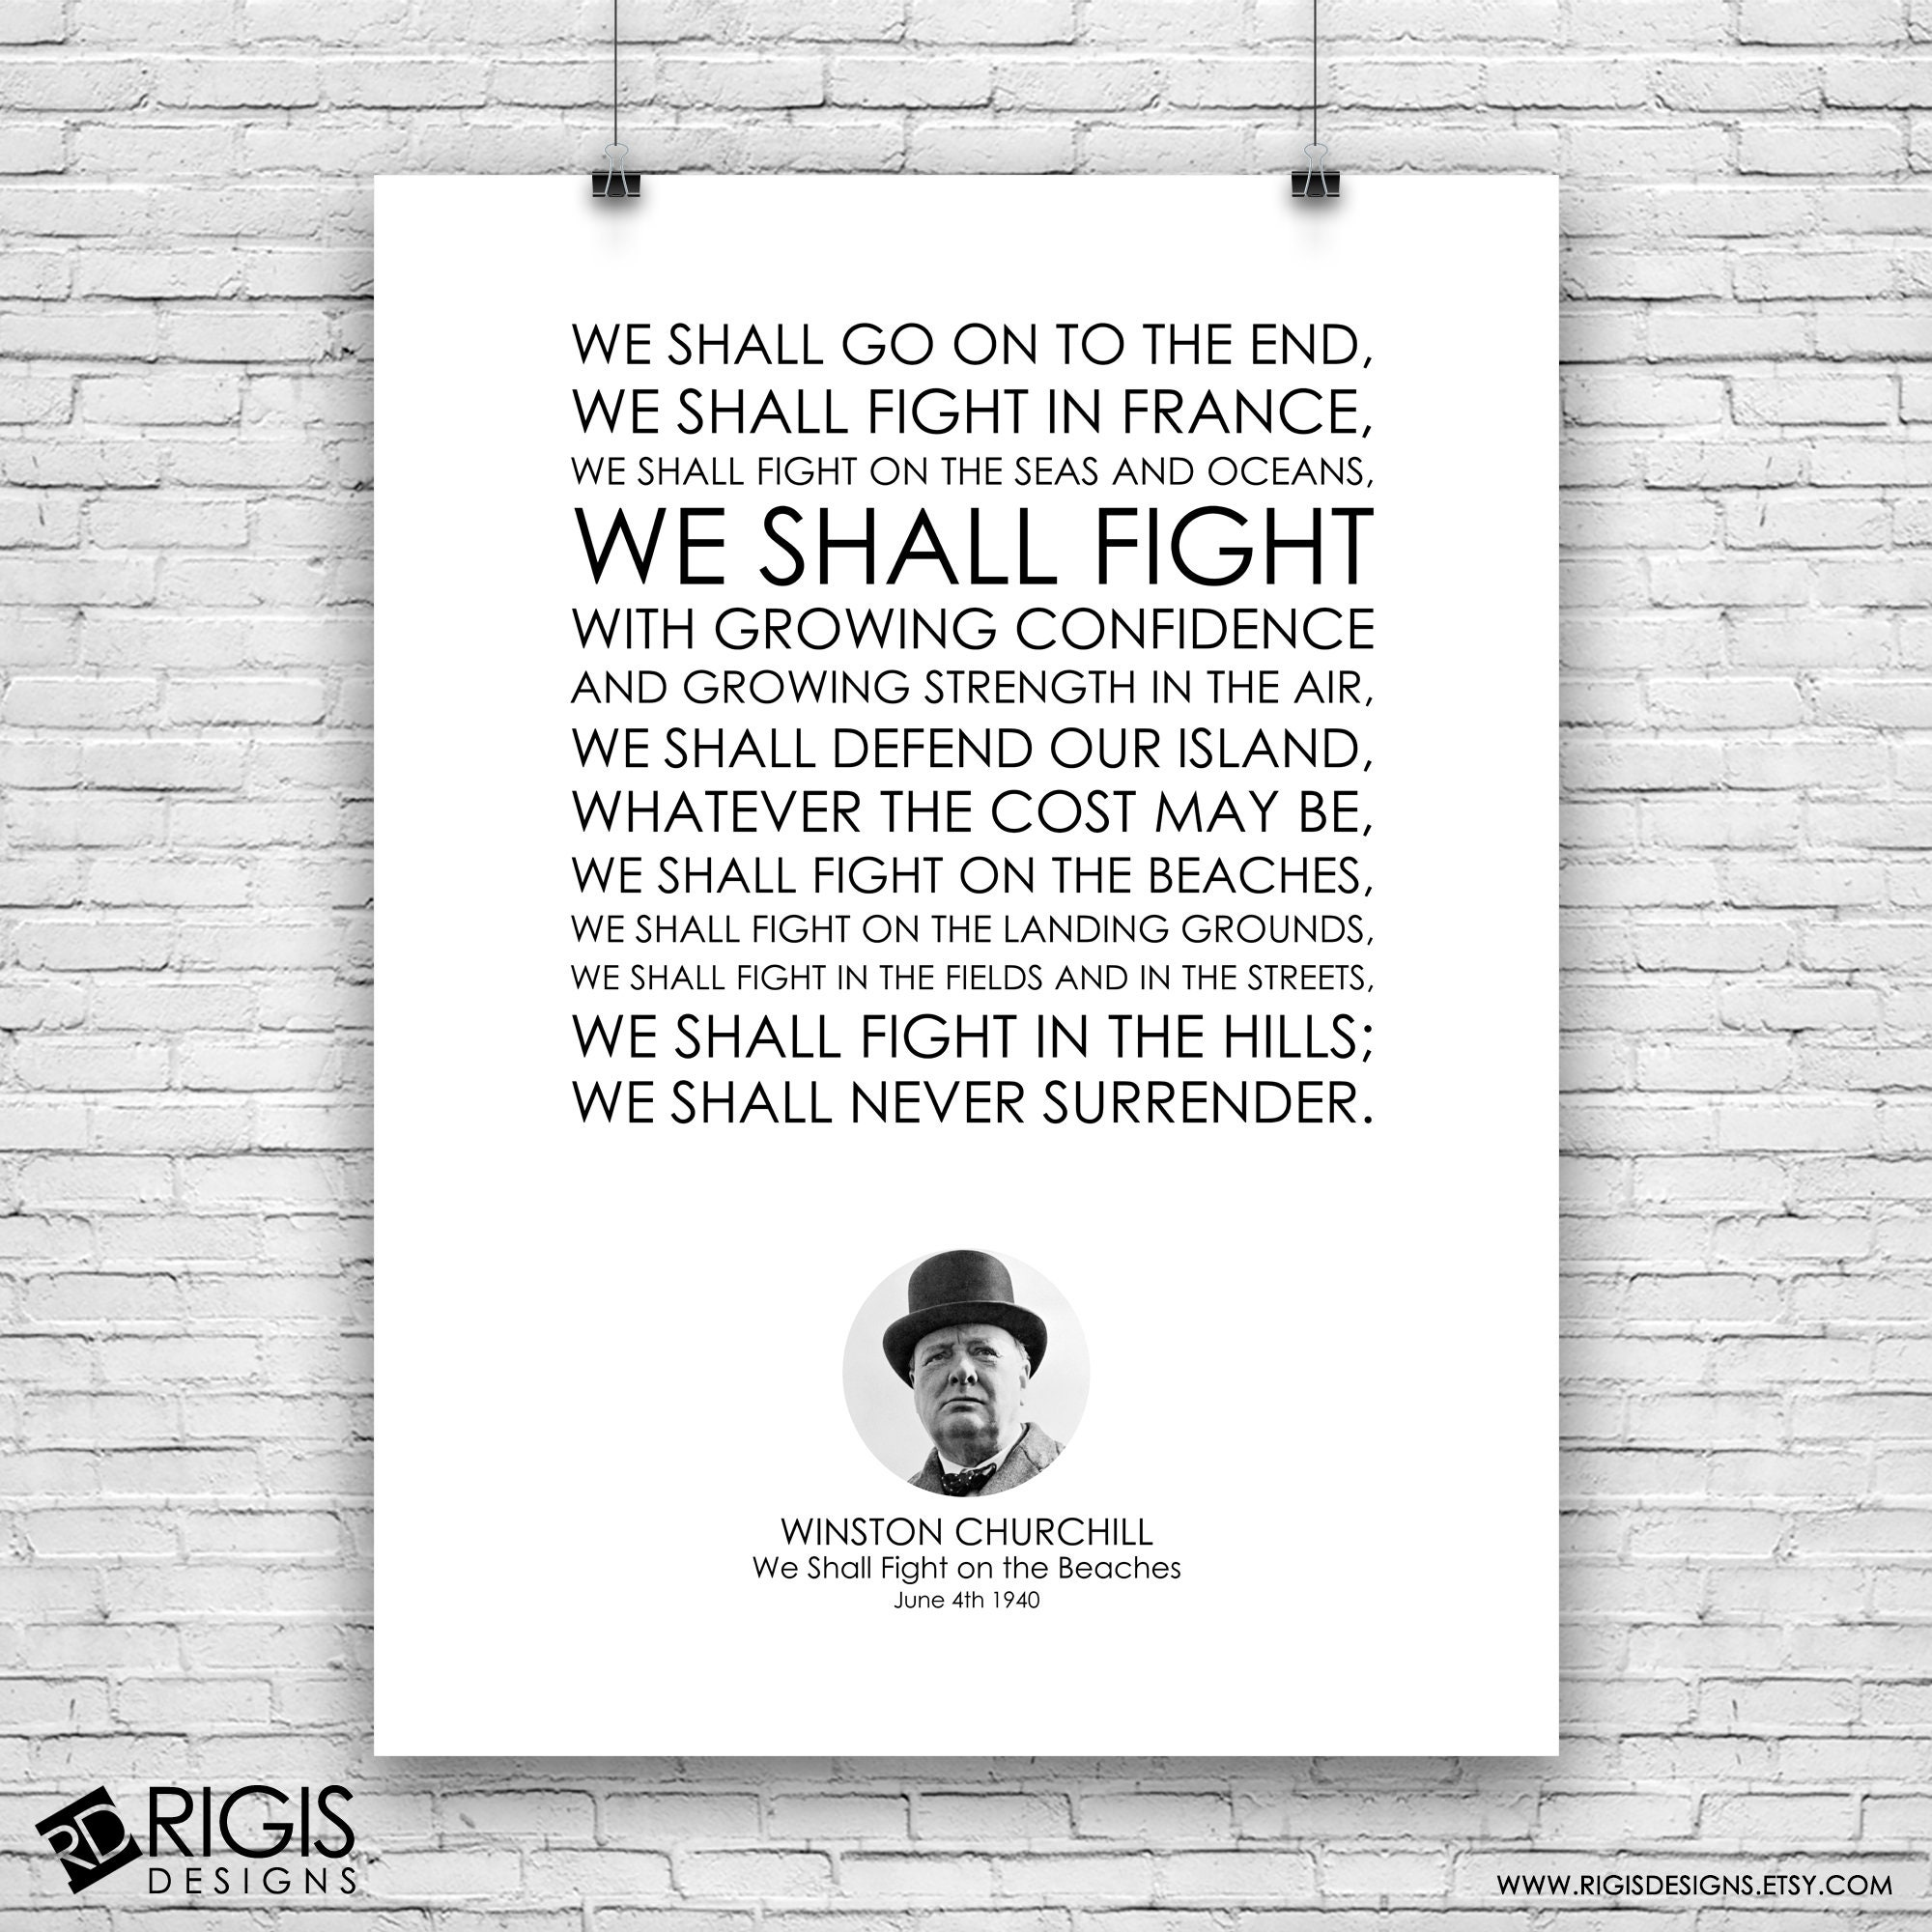 Winston Churchill, We Shall Fight on the Beaches